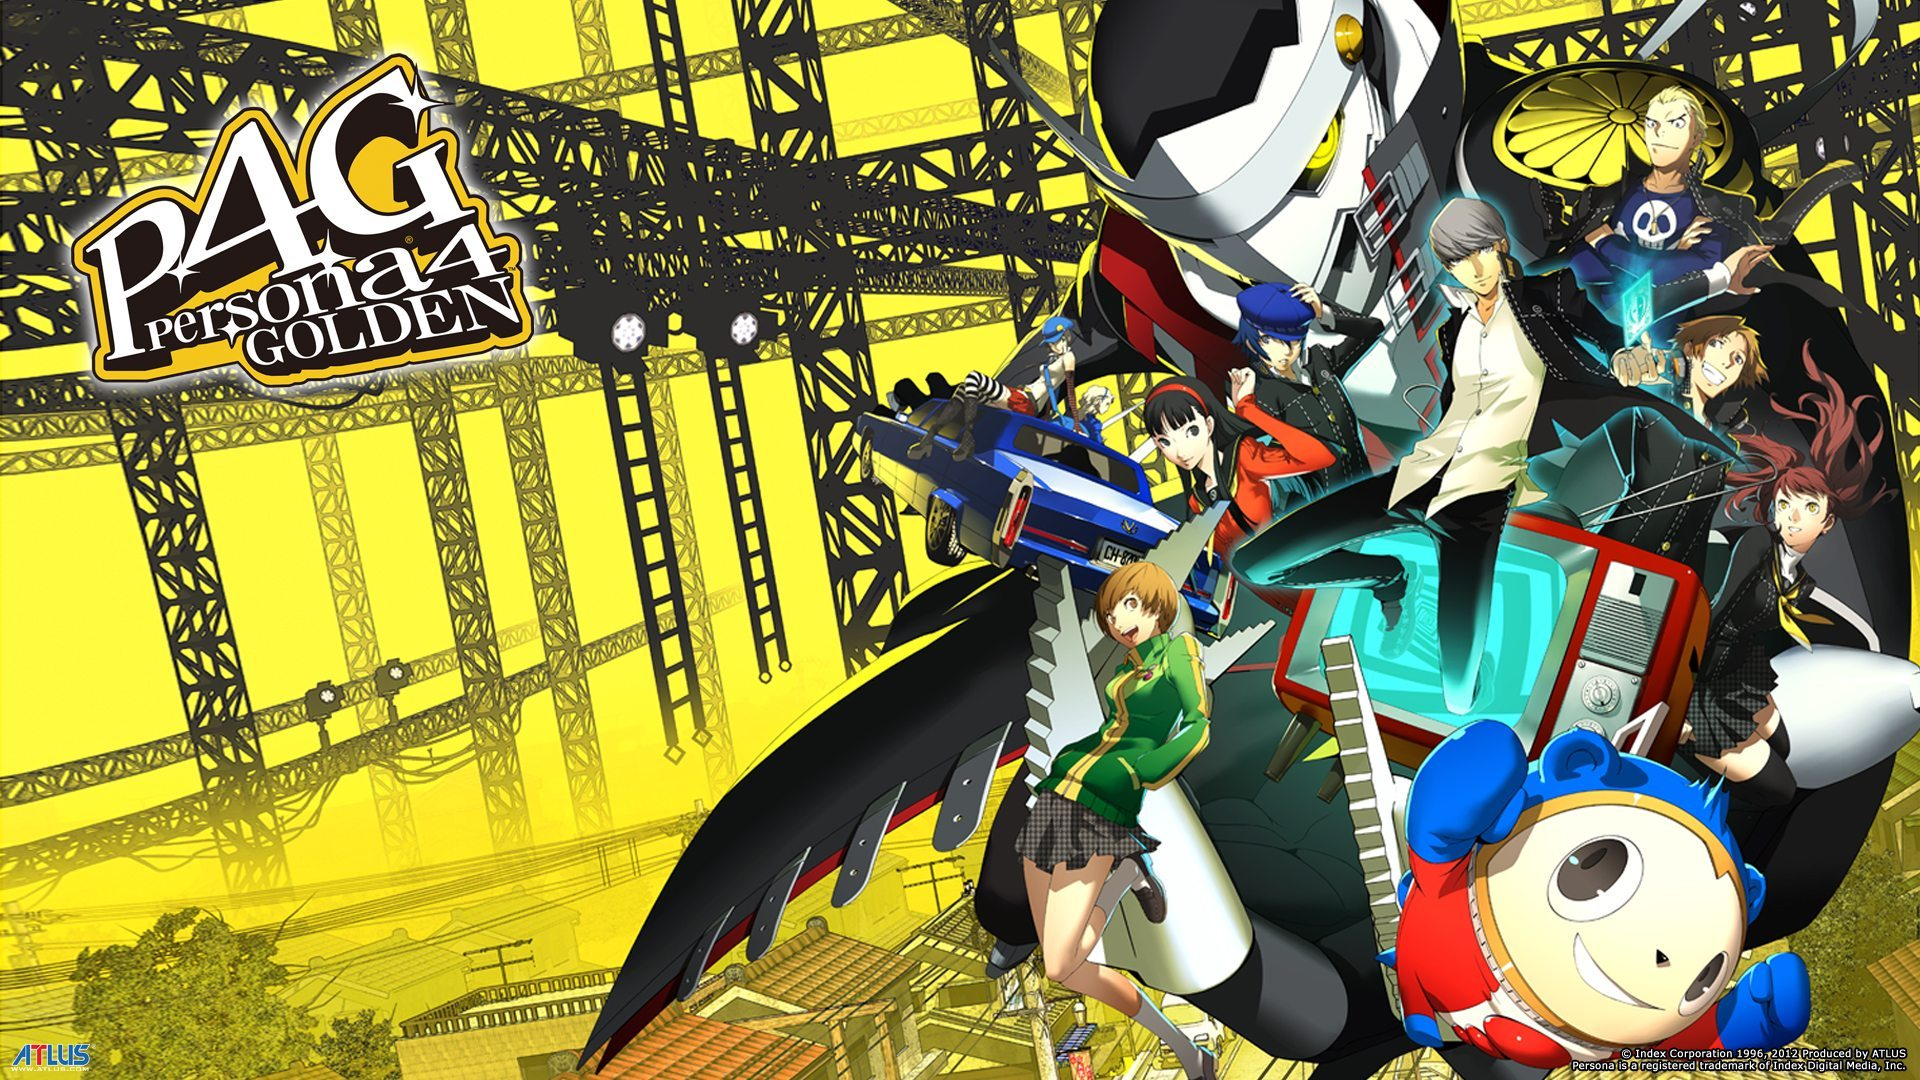 Key Art from Persona 4 Golden (Atlus)